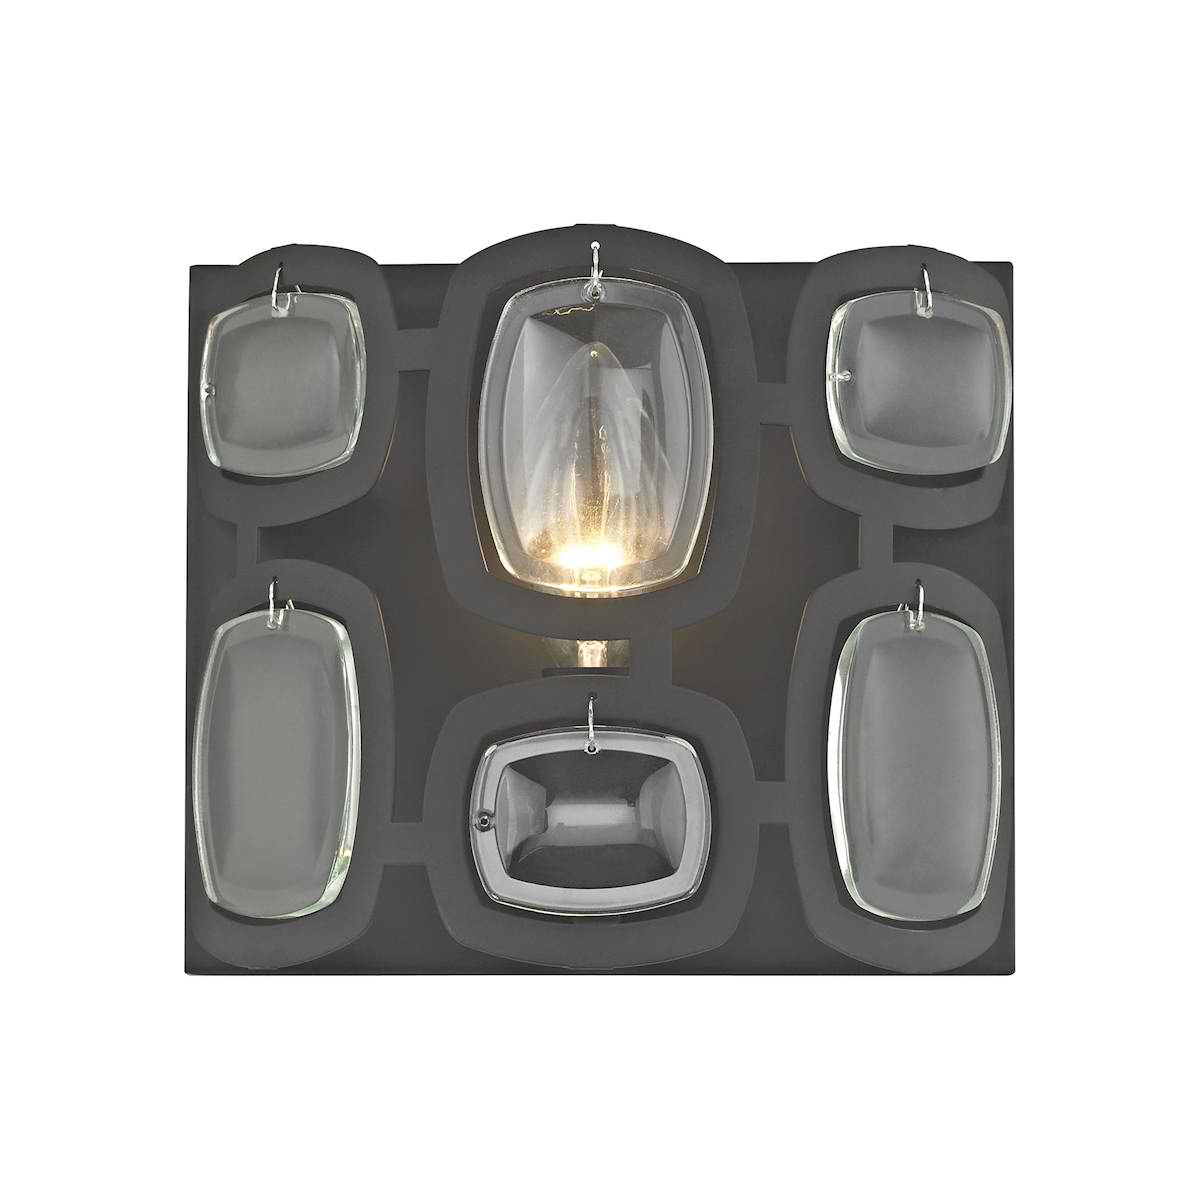 Monserrat 1 Light Vanity in Oil Rubbed Bronze with Clear Glass